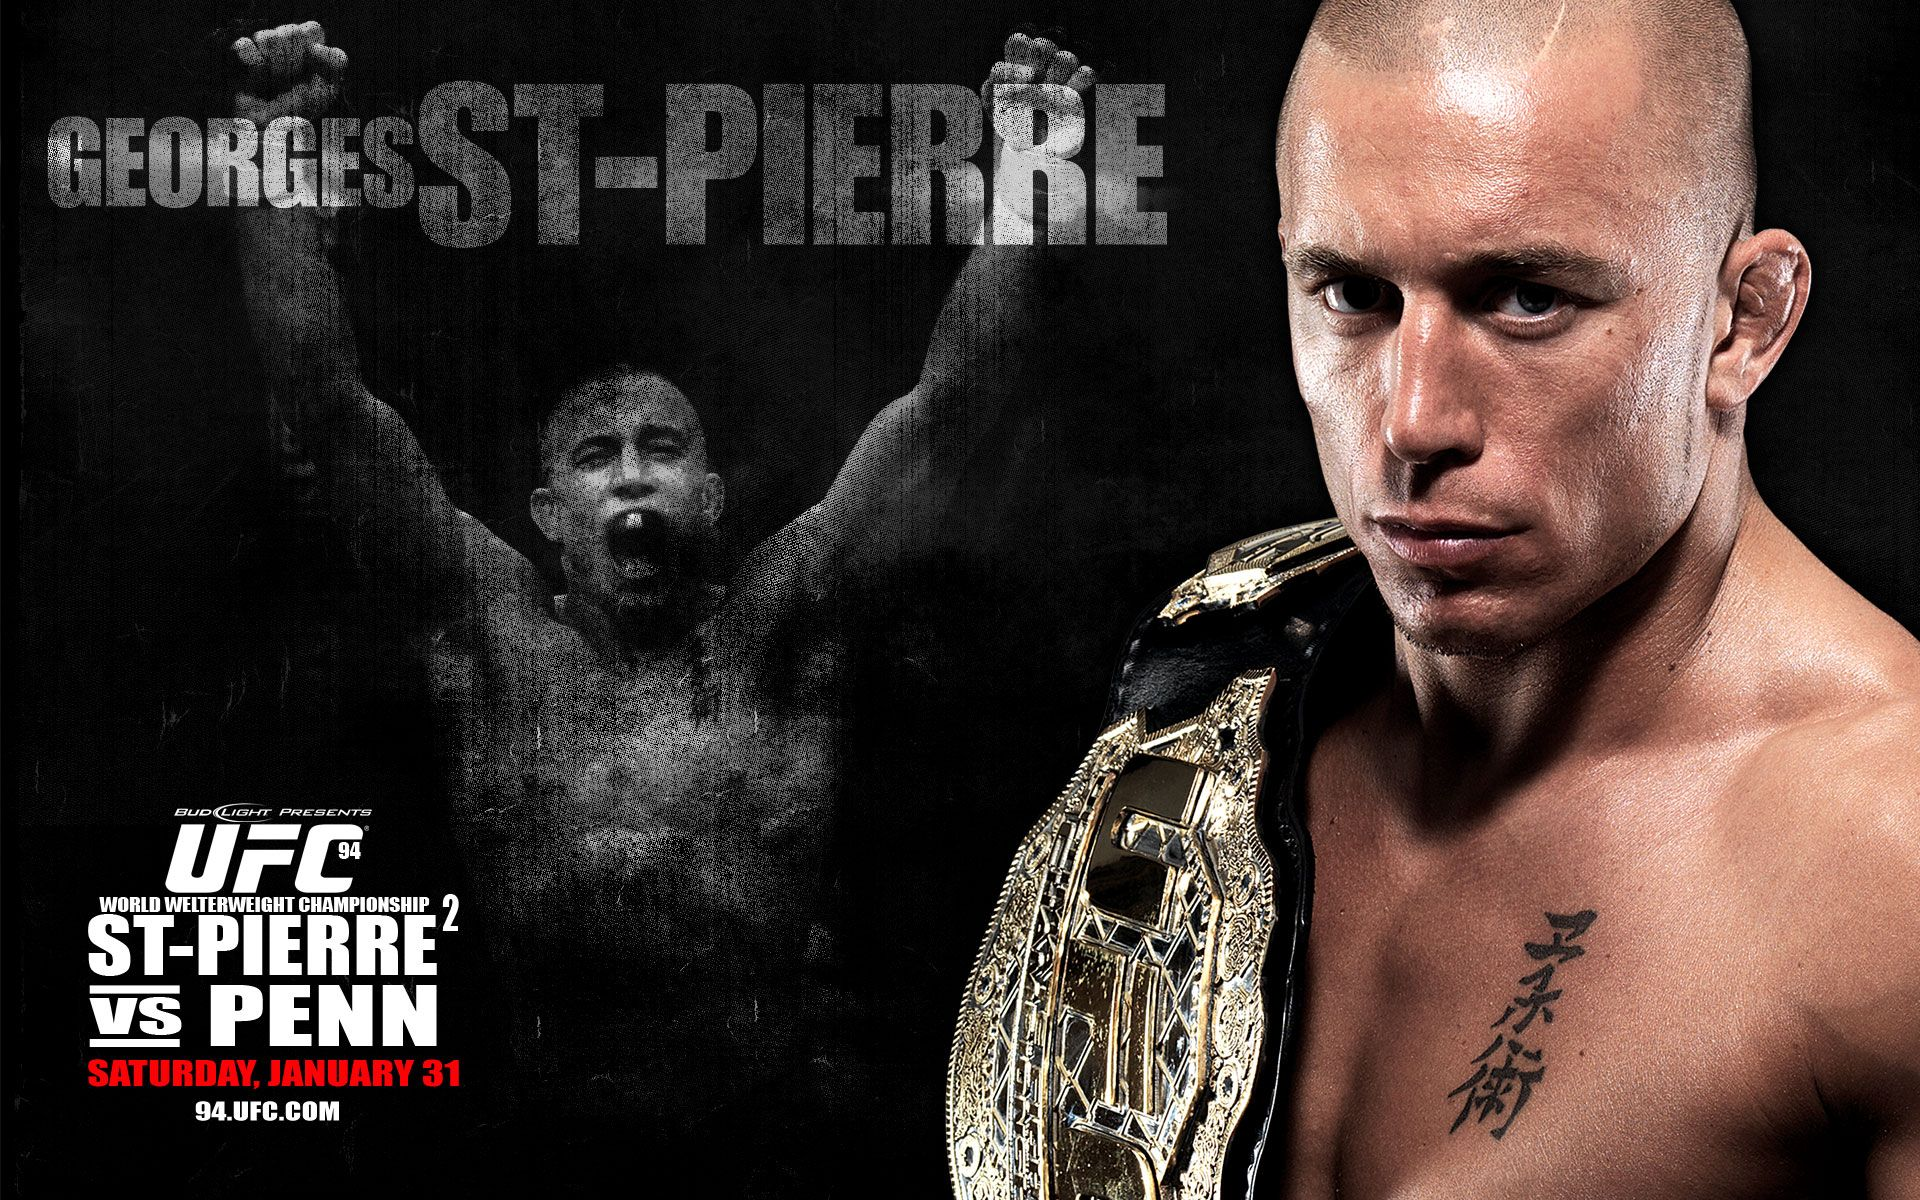 Ufc wallpaper ufc wallpaper with 1920x1200 resolution gsp ufc wallpaper ufc wallpaper with 1920x1200 resolution voltagebd Image collections